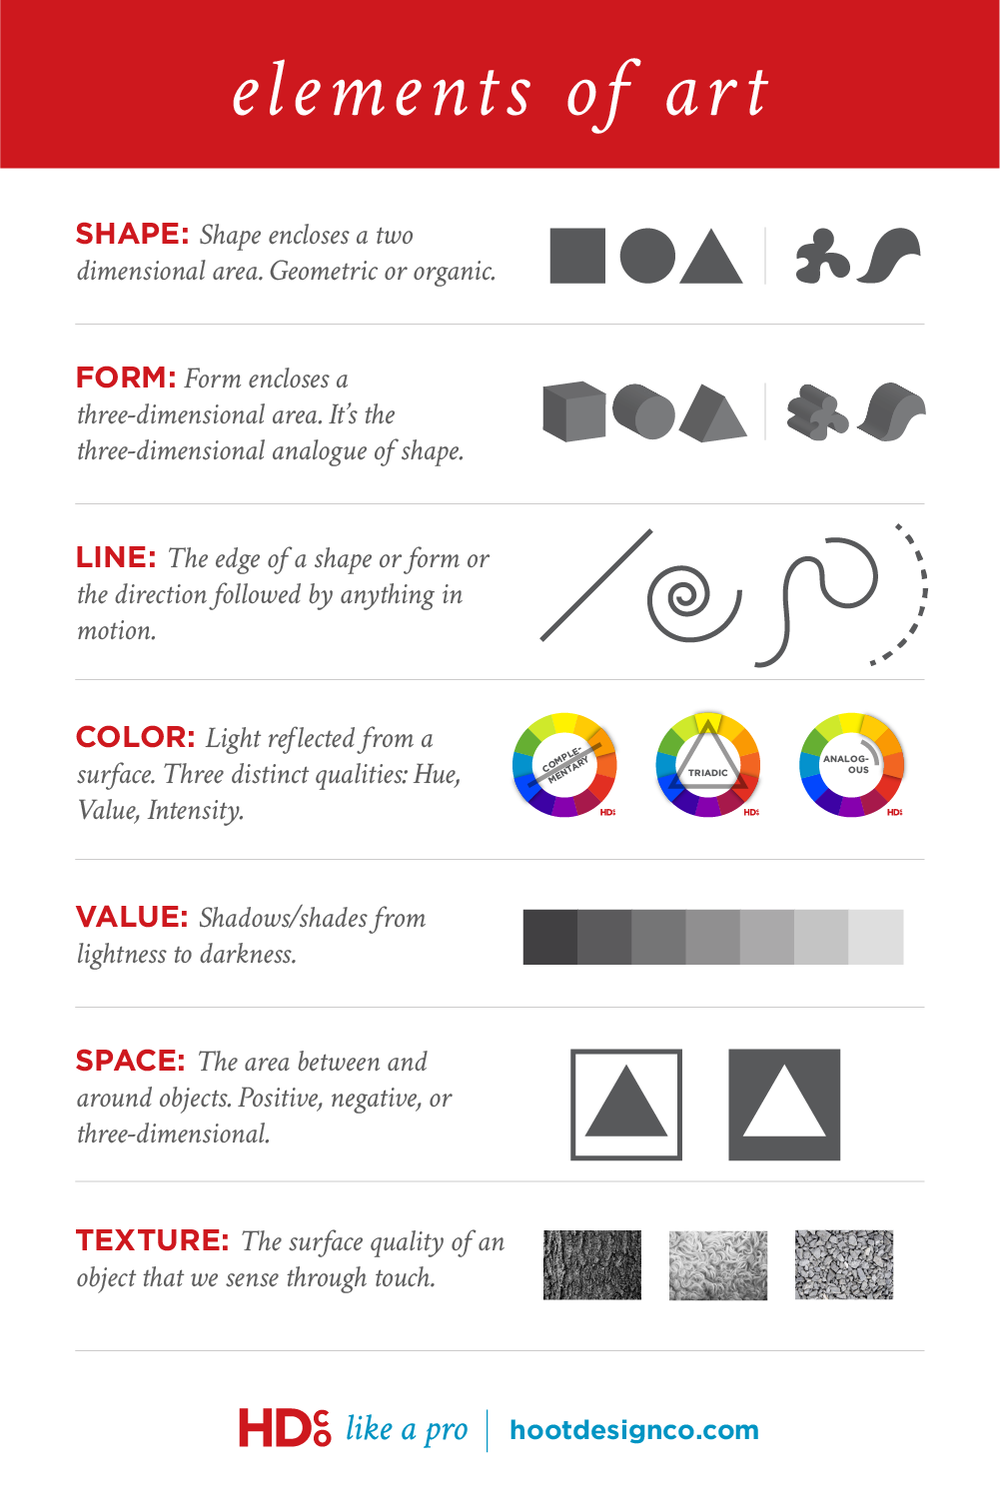 7 Elements Of Art : The elements of art hoot design co web